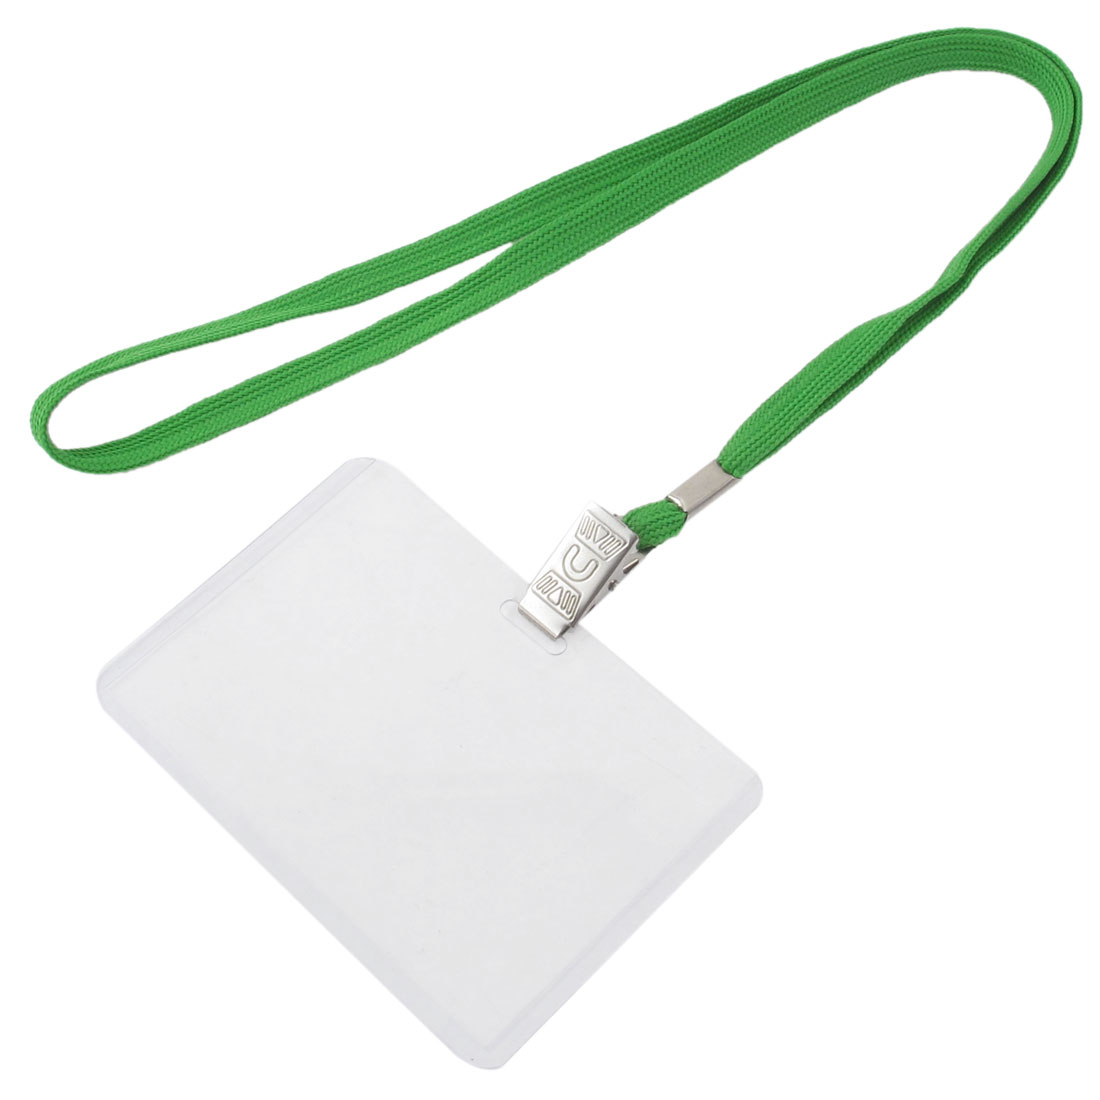 Neck Strap Plastic Horizontal ID Name Employee Card Tag Holder Clear Green